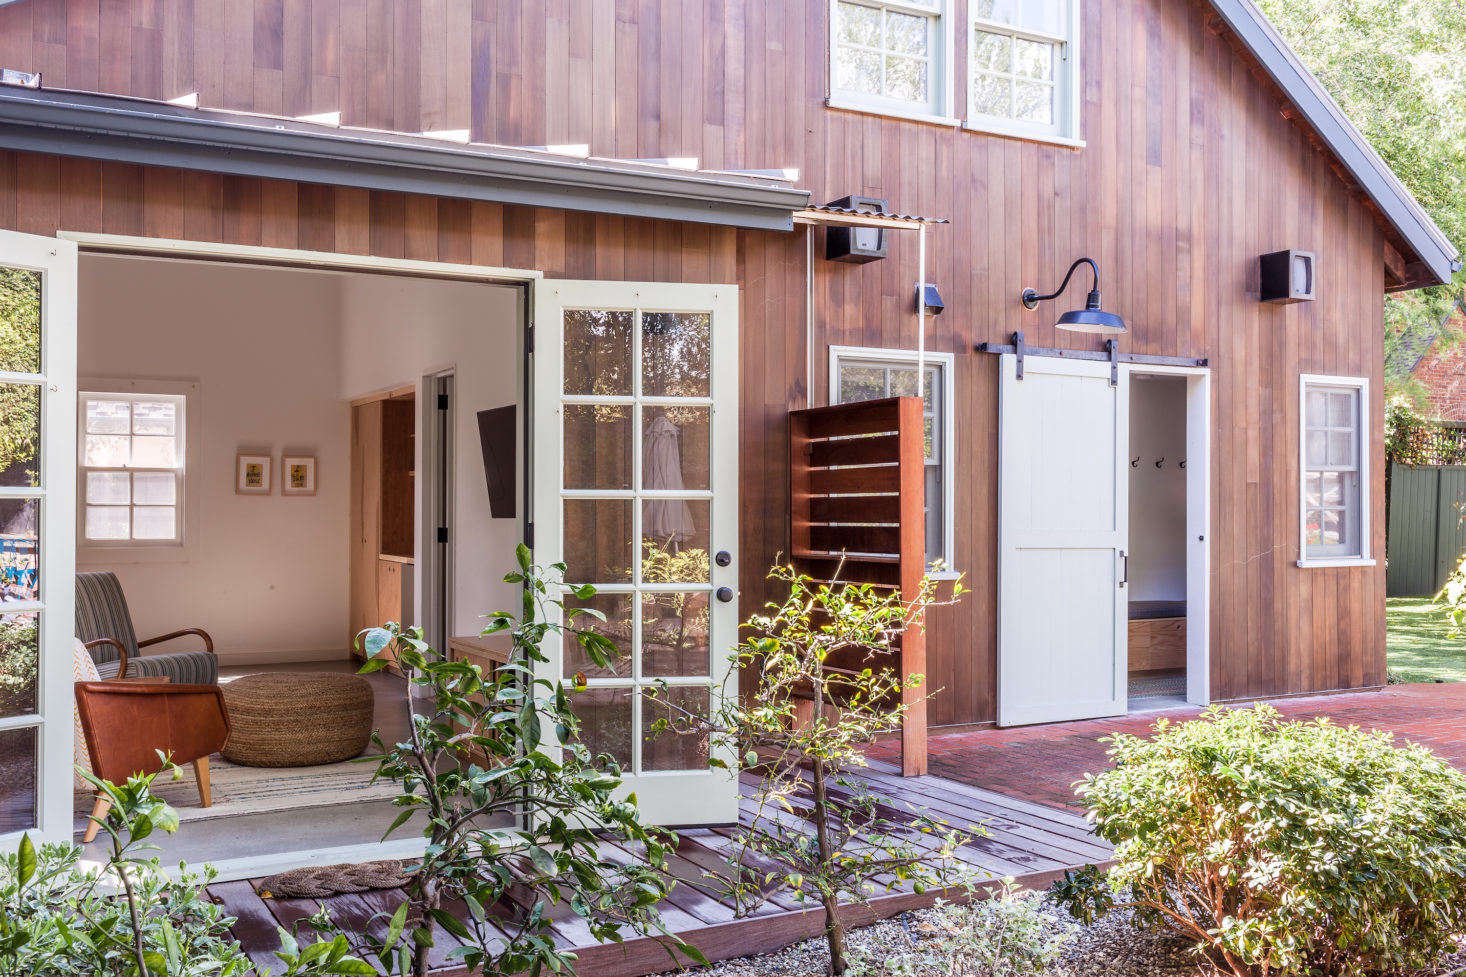 turn garage into office cost christine lennon guest barn outdoor shower image by stephen paul and anderson smallspace living garage conversion that prioritizes smart storage